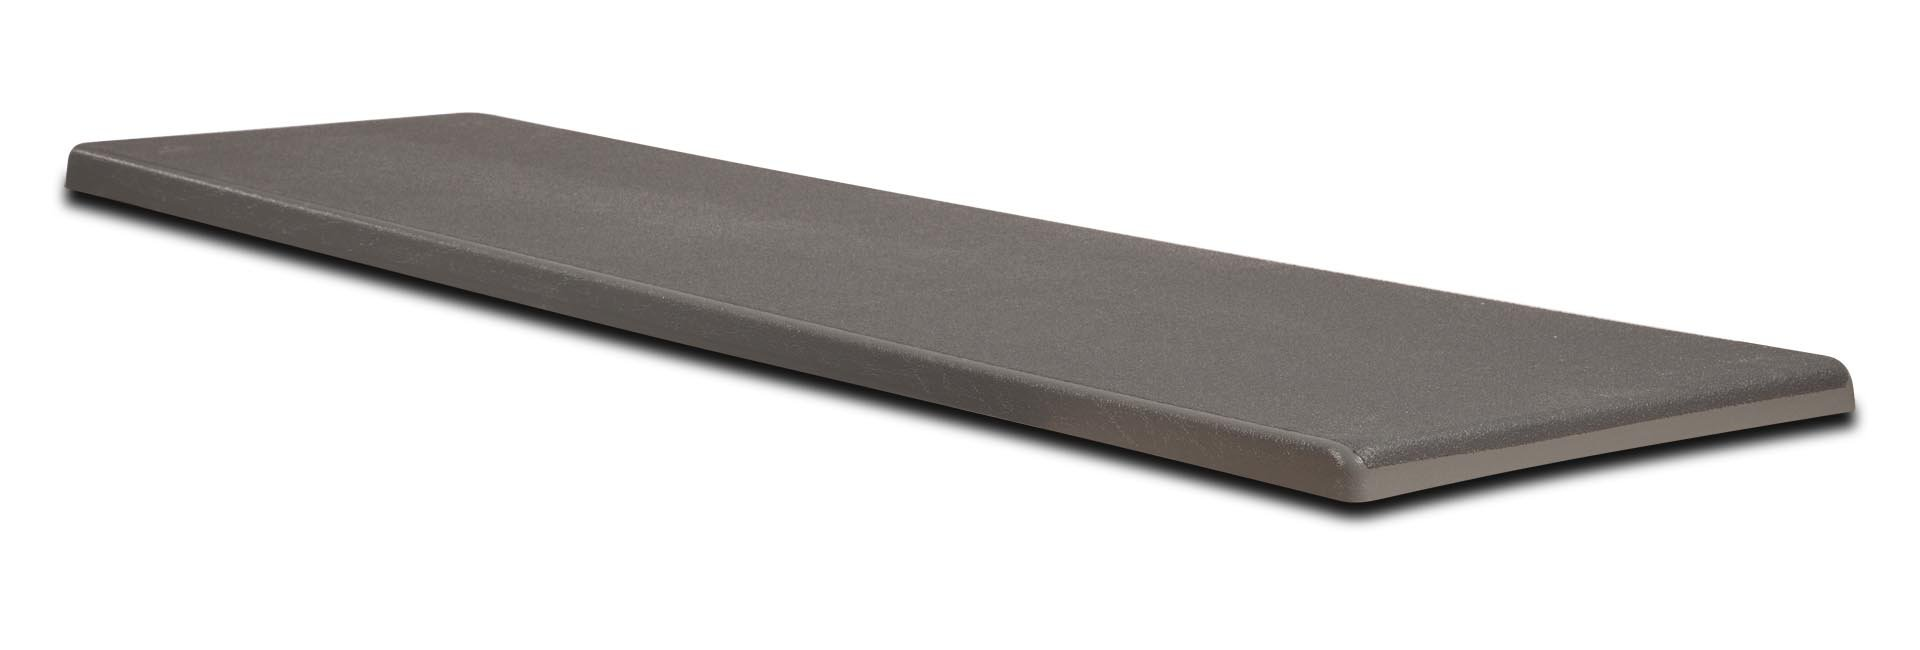 S.R. Smith 66-209-266S20T Fibre-Dive Replacement Diving Board with Matching Tread, 6-Feet, Pewter Gray